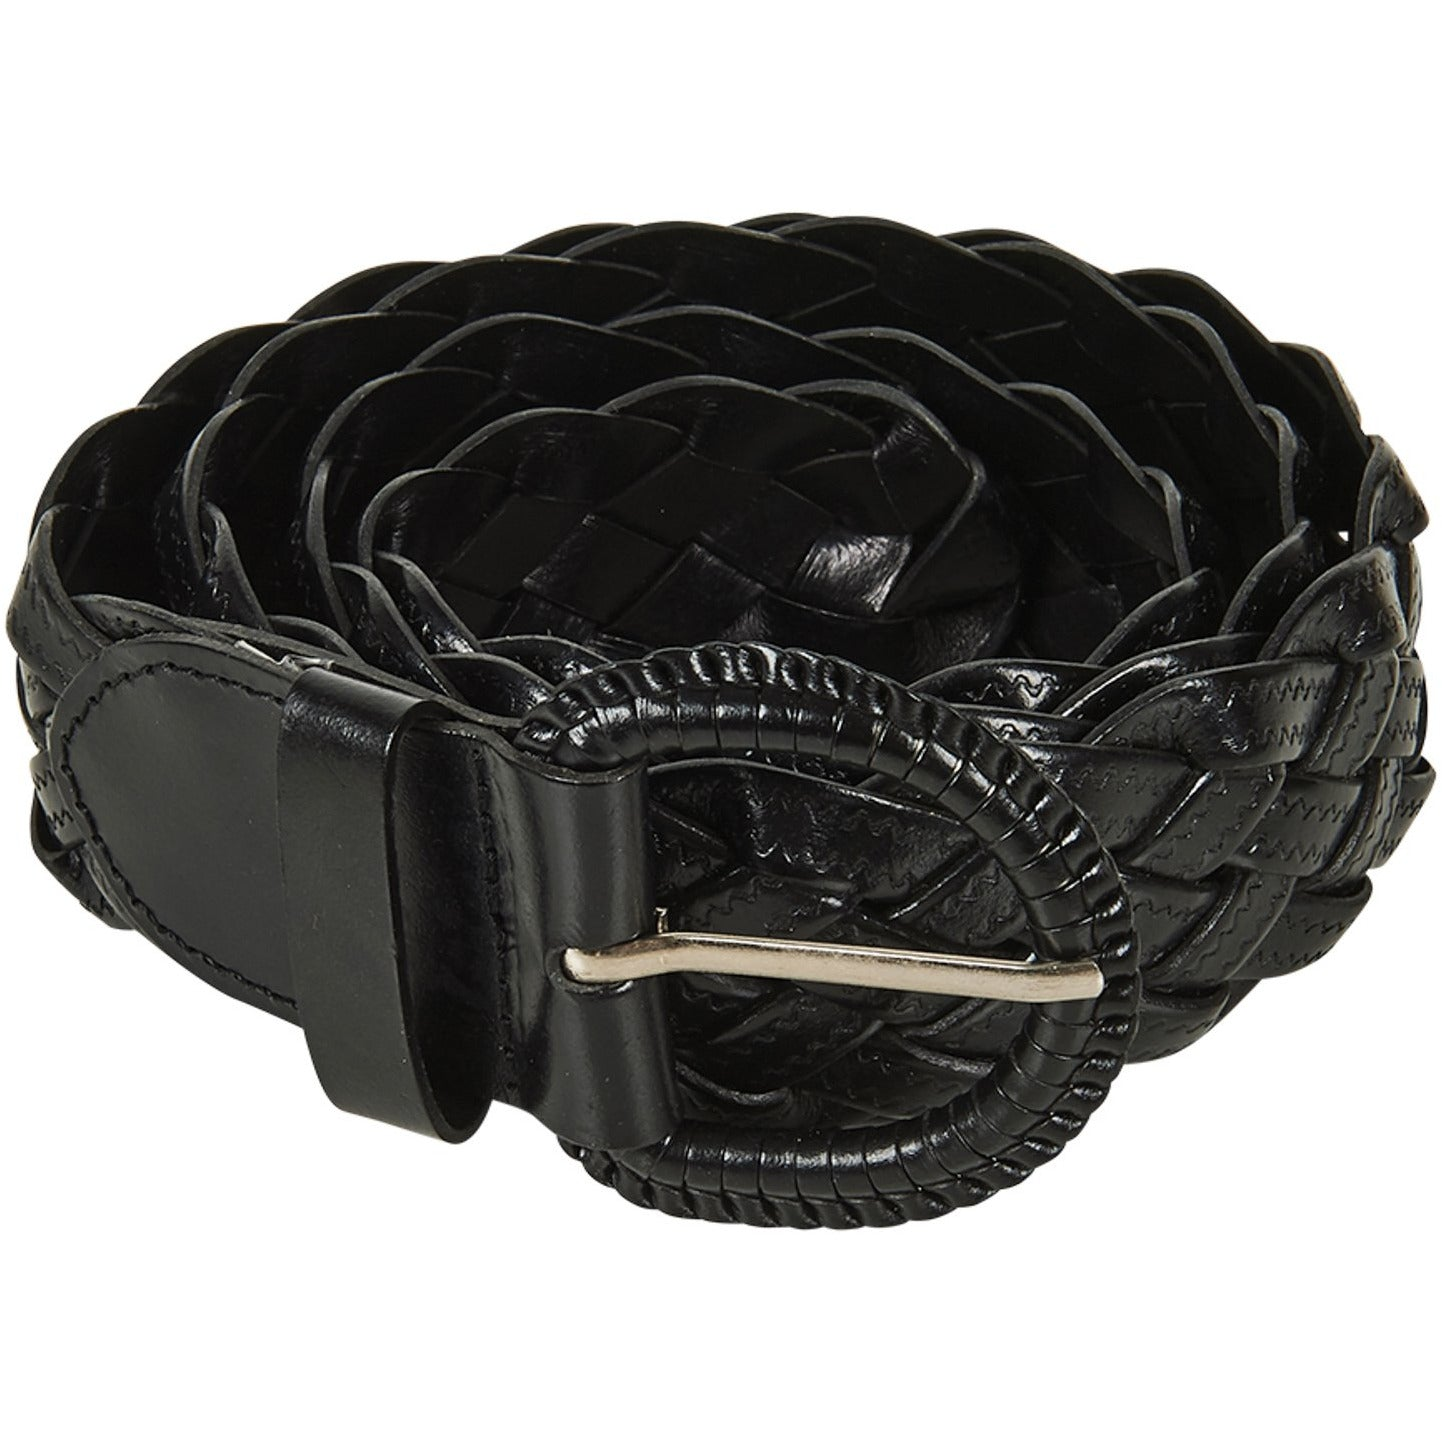 eb&ive Society Belt in Black